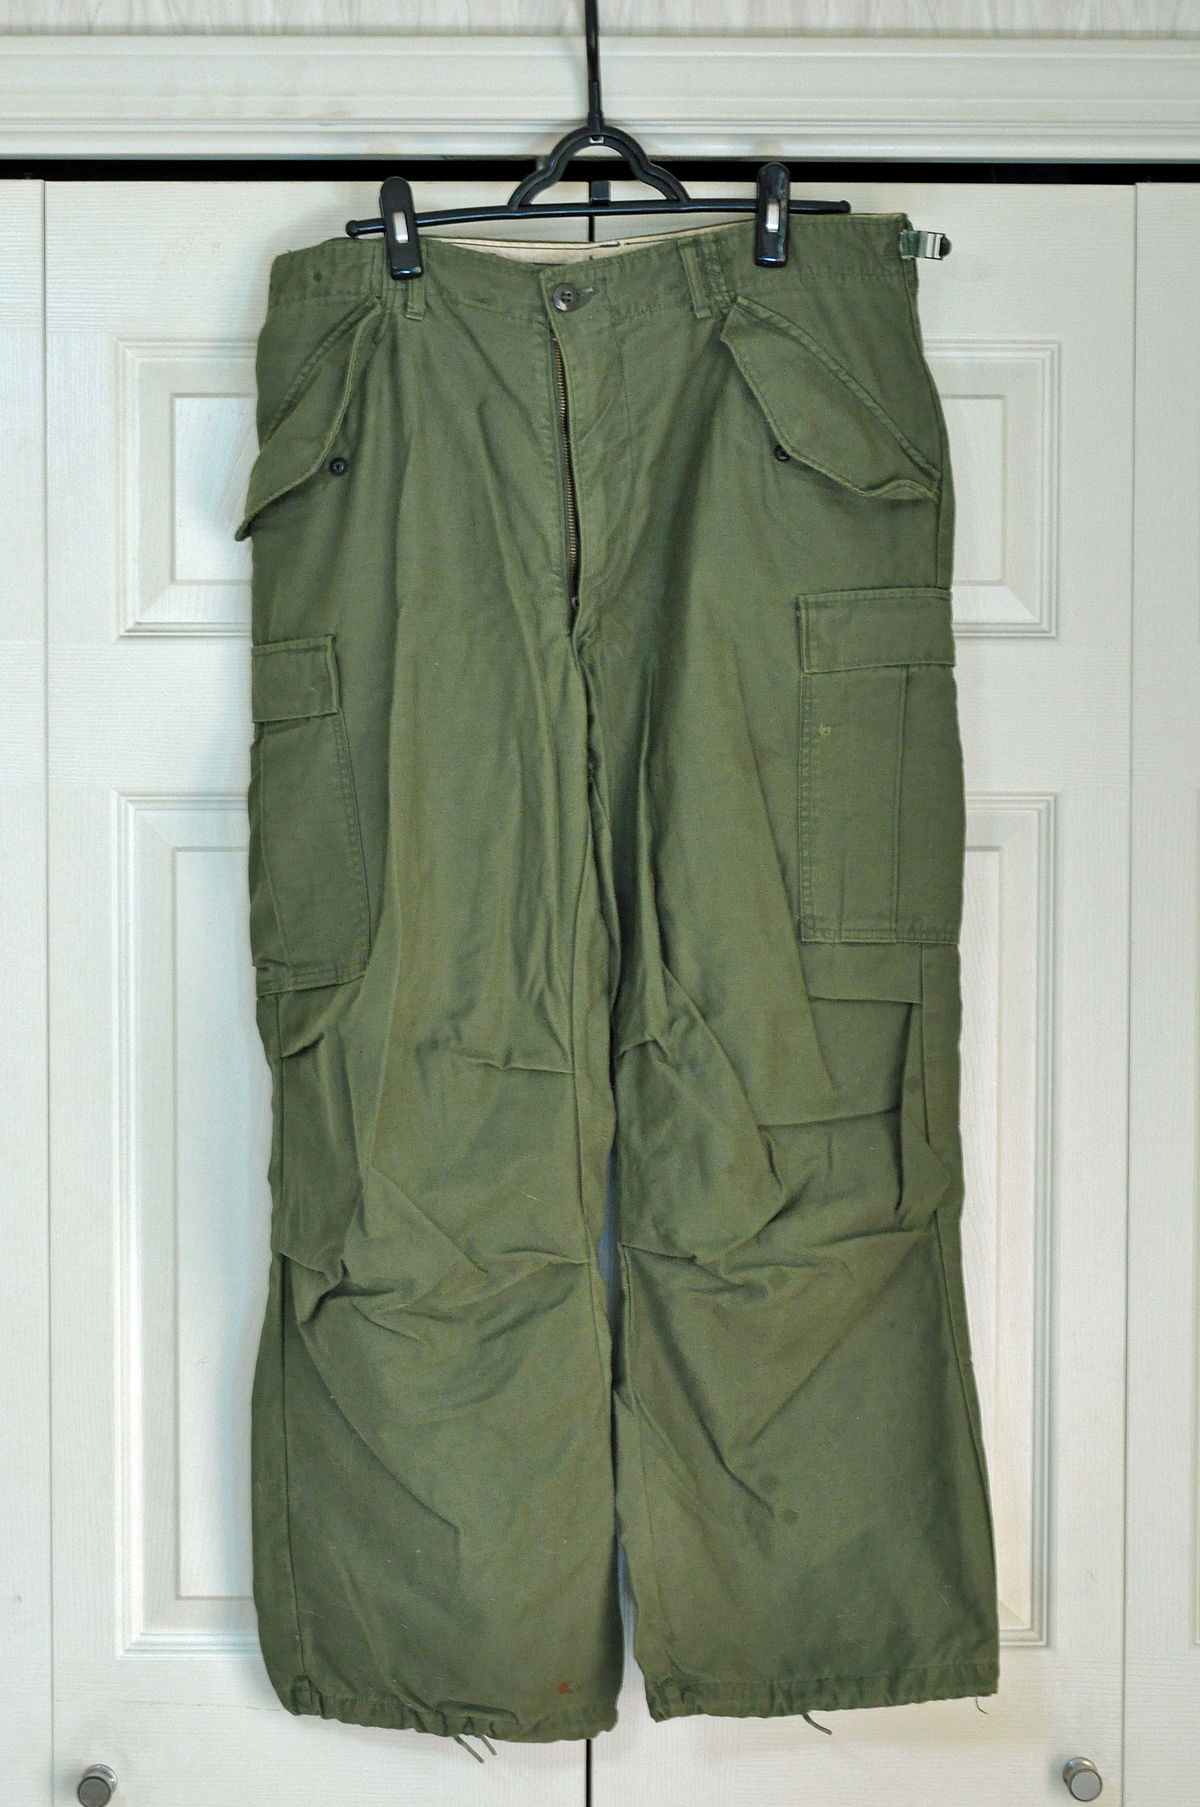 269b88eff447 Cargo pants - Wikipedia